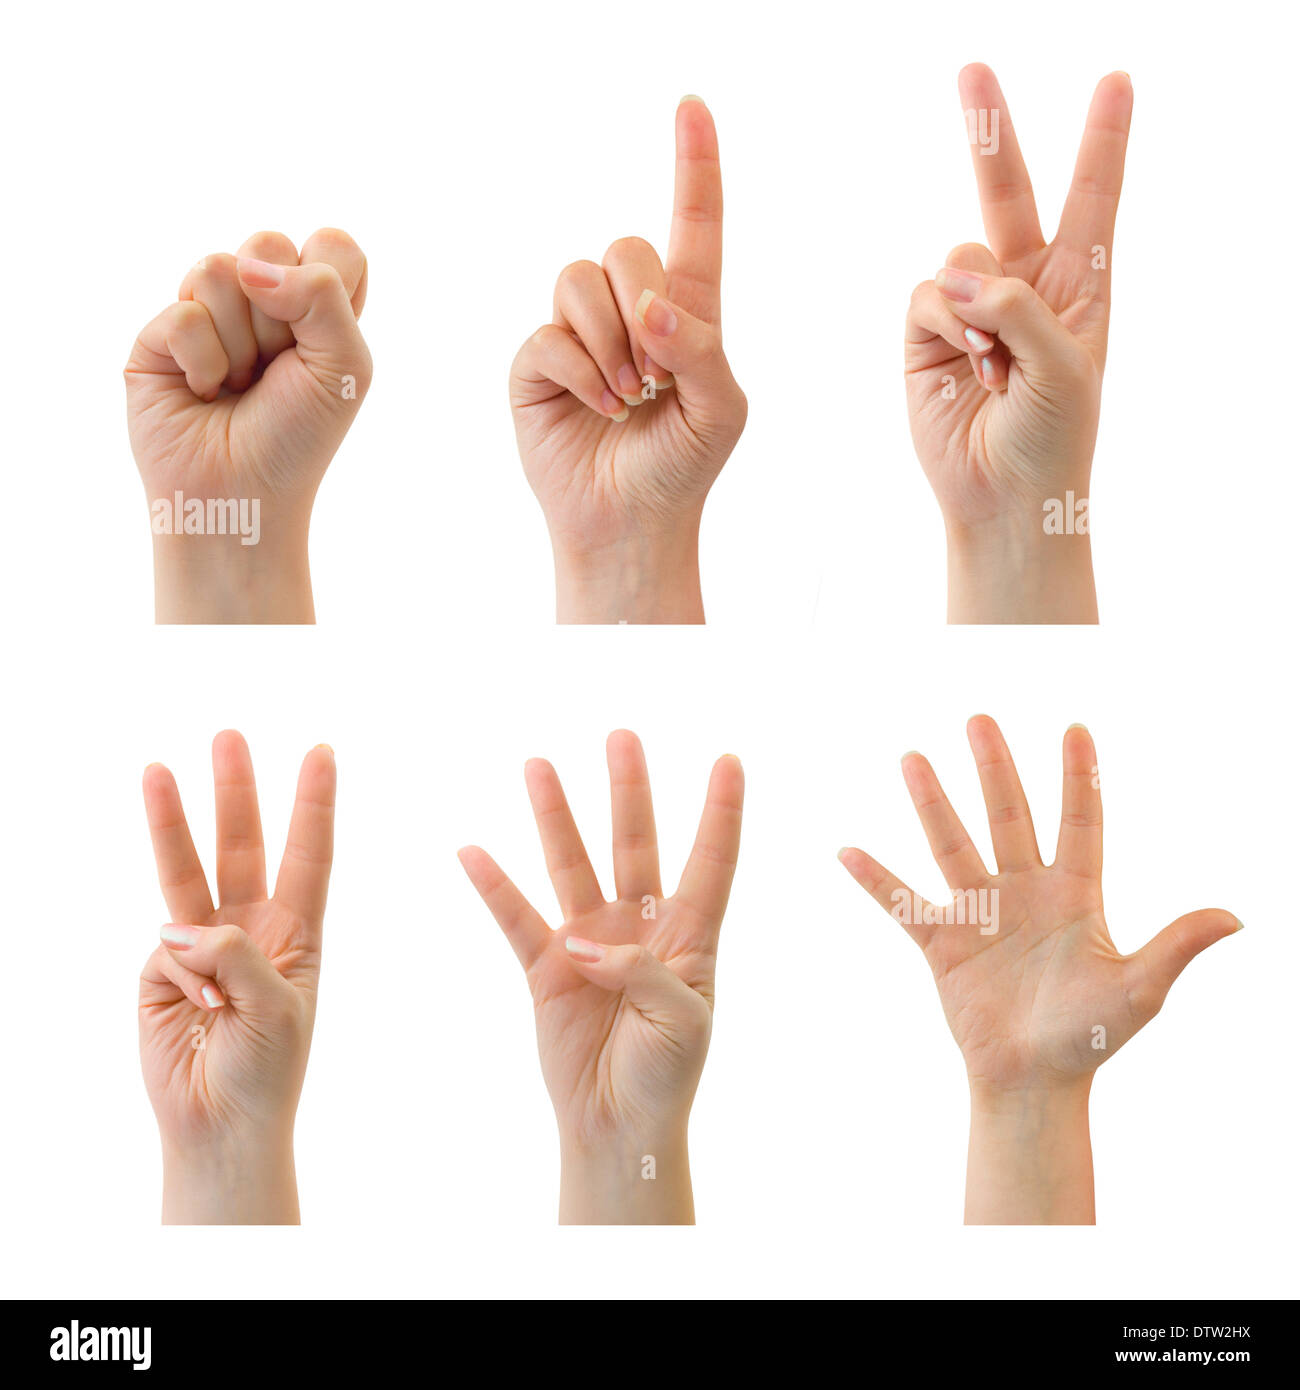 Counting hands (0 to 5) - Stock Image